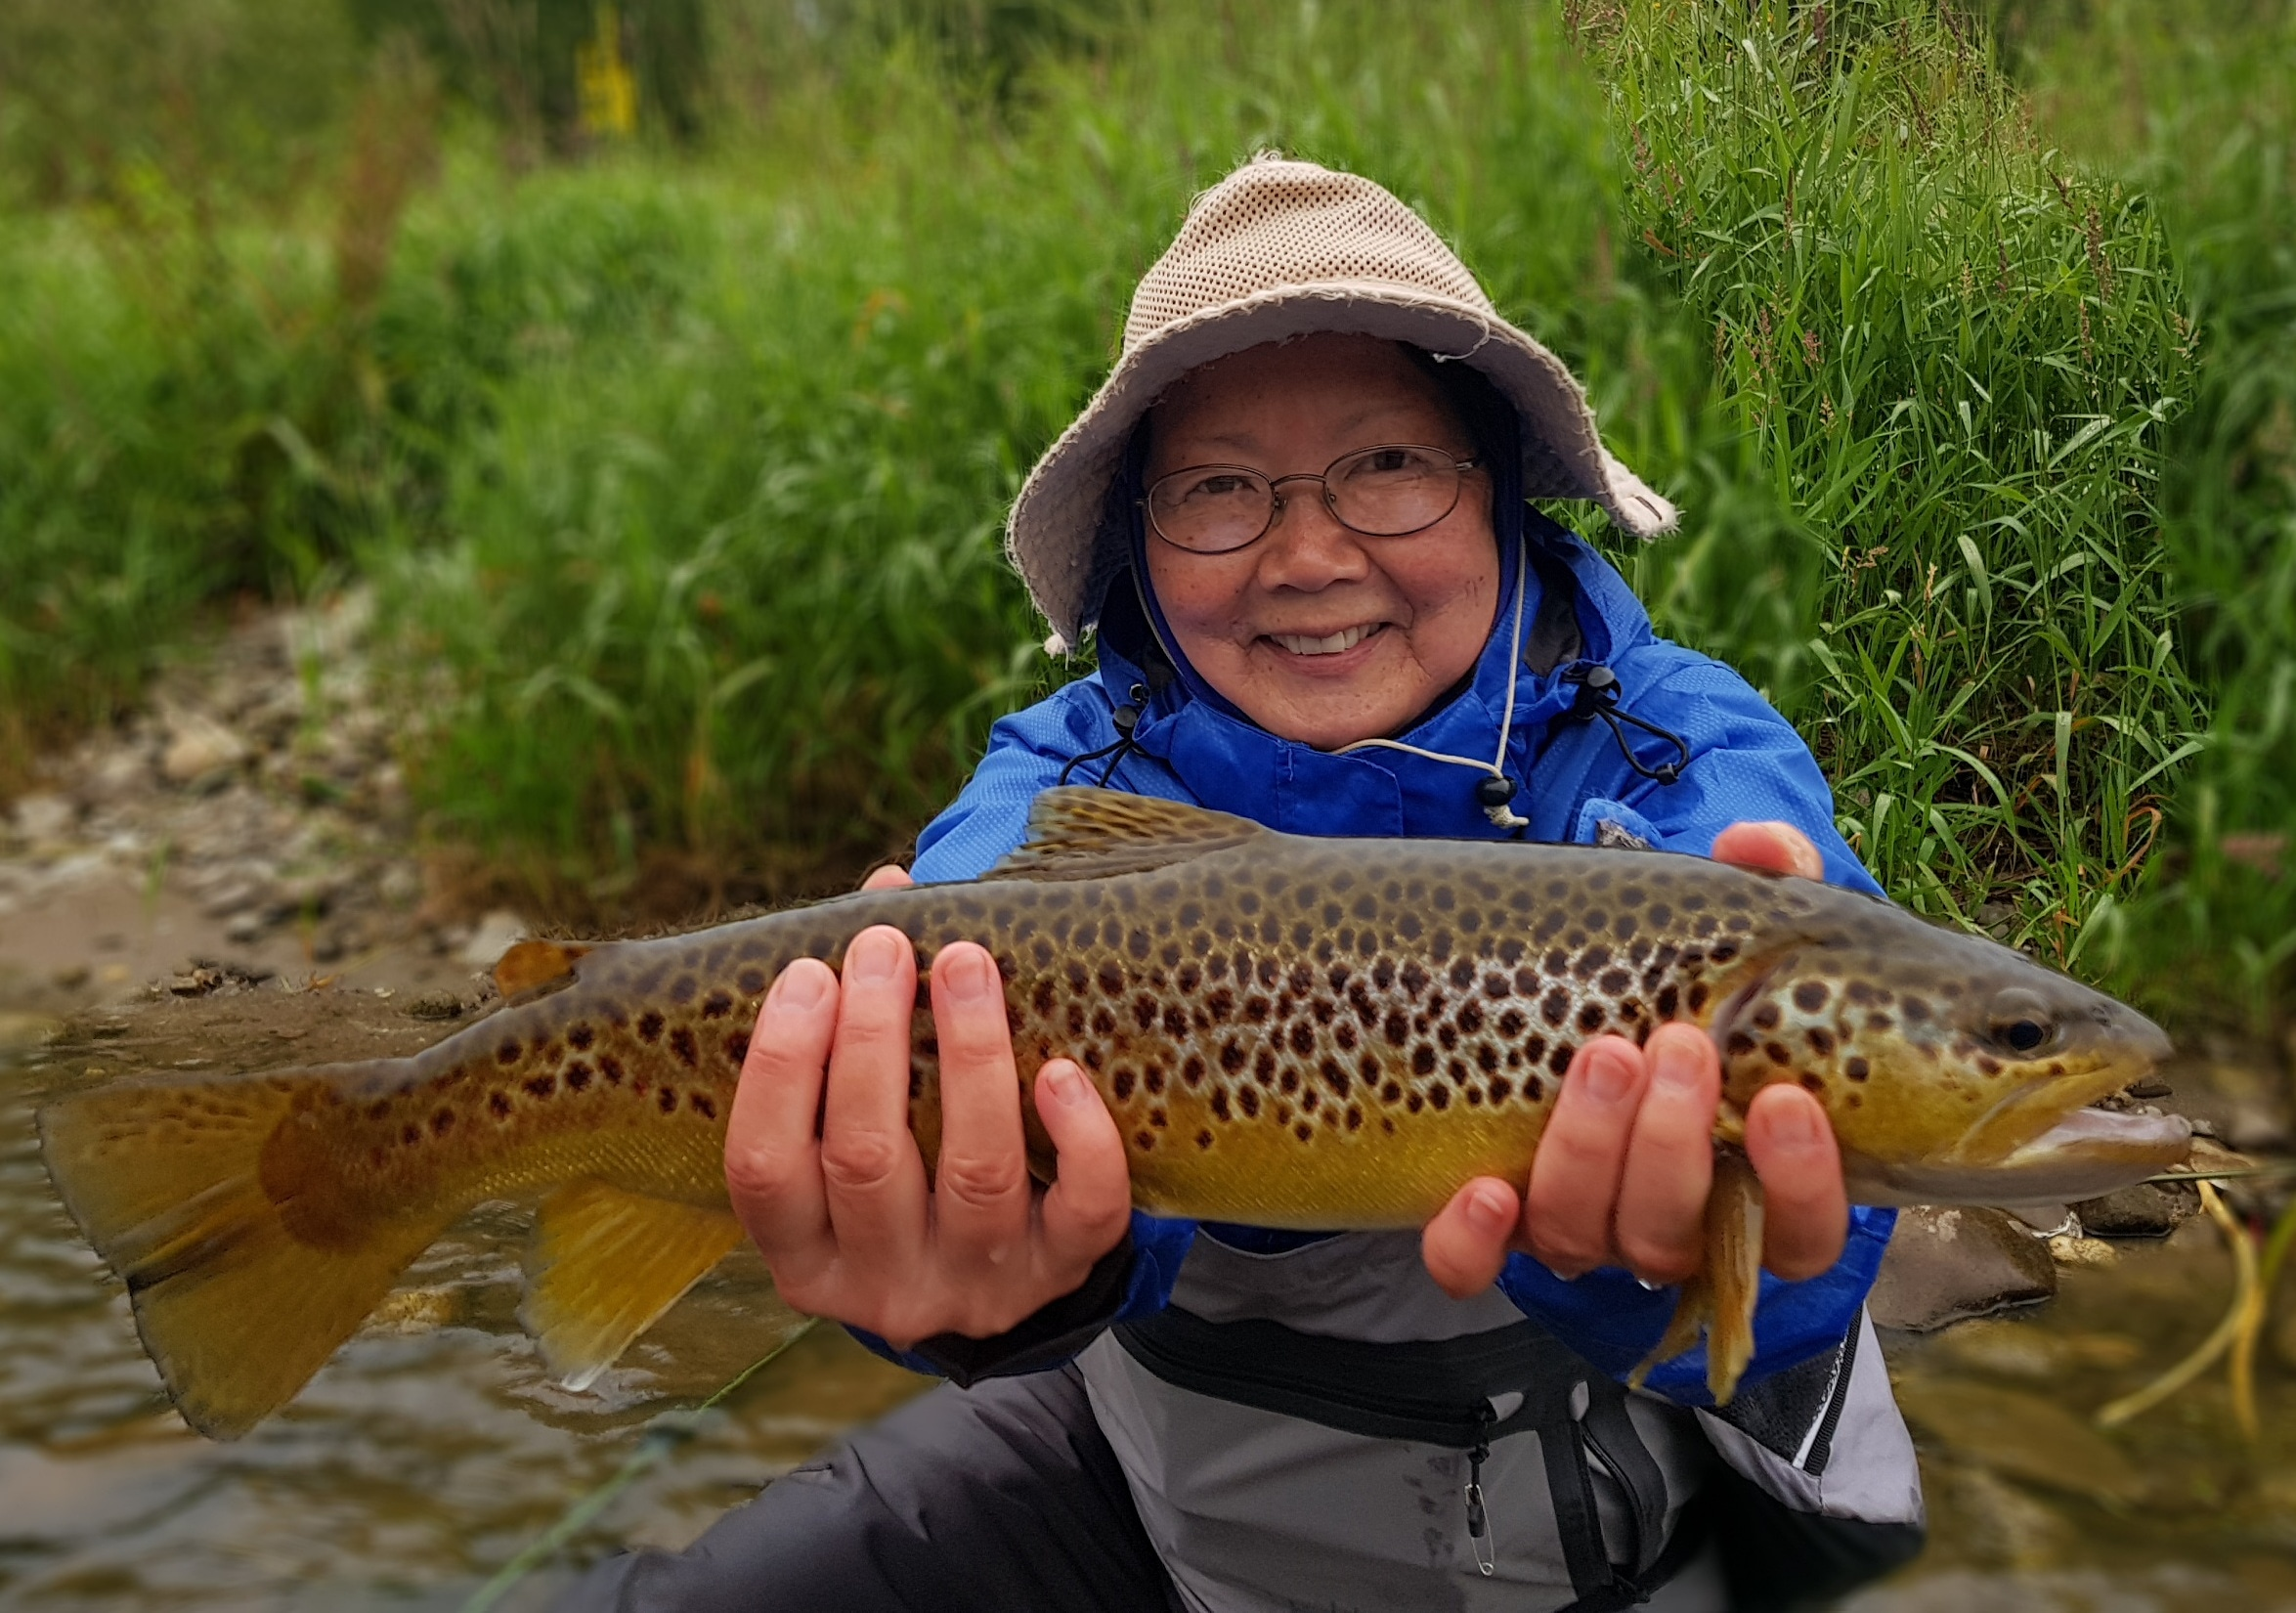 Wild river brownt trout fishing Poland - Europe